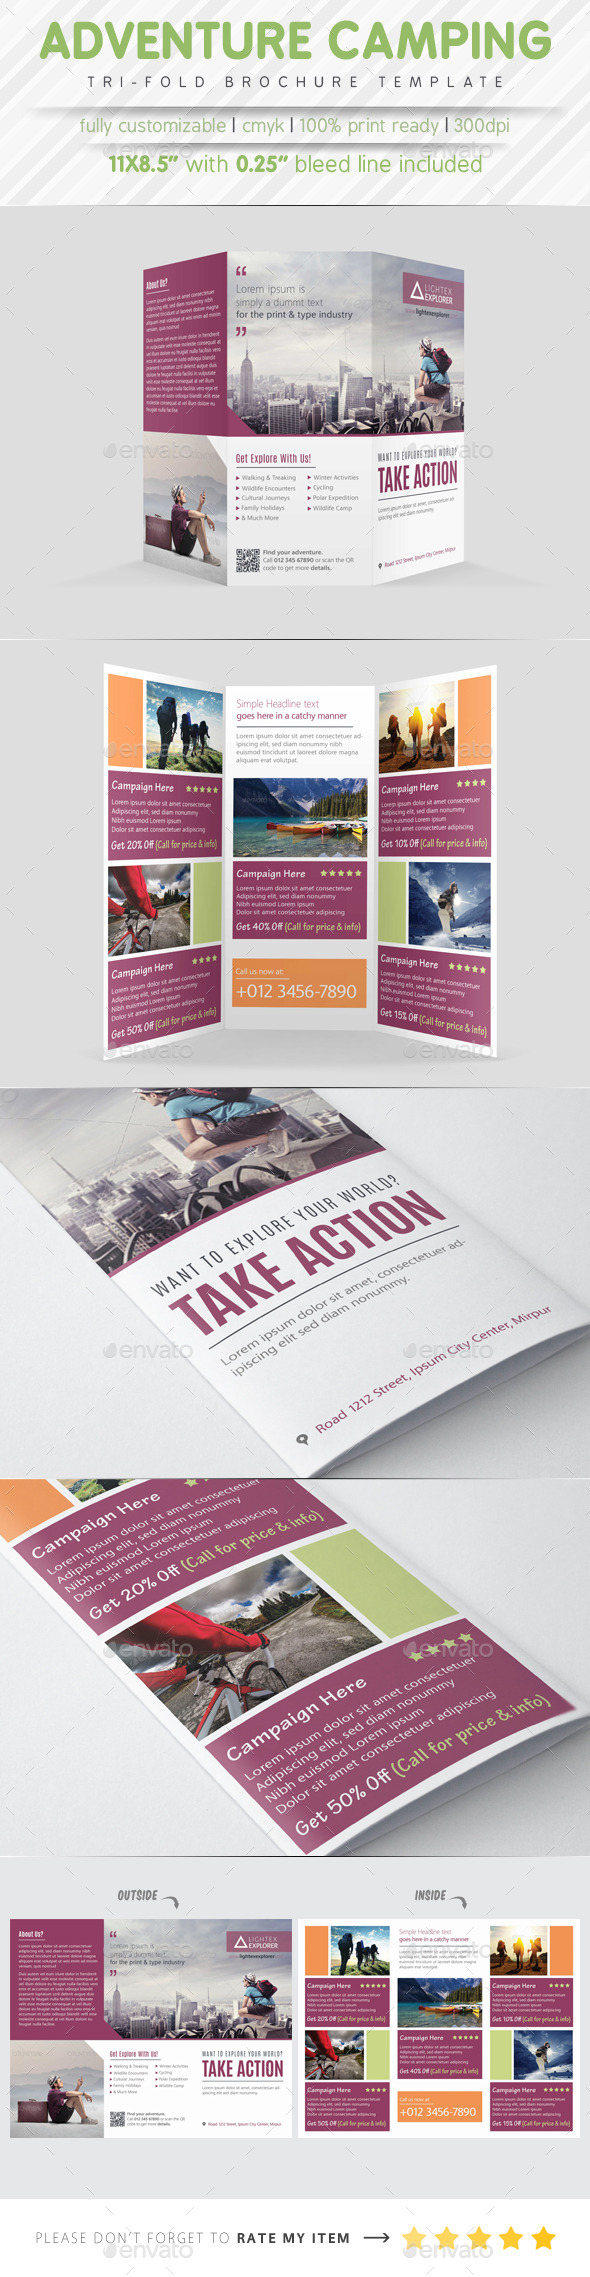 GraphicRiver Adventure Camping Tri Fold Brochure 9229940